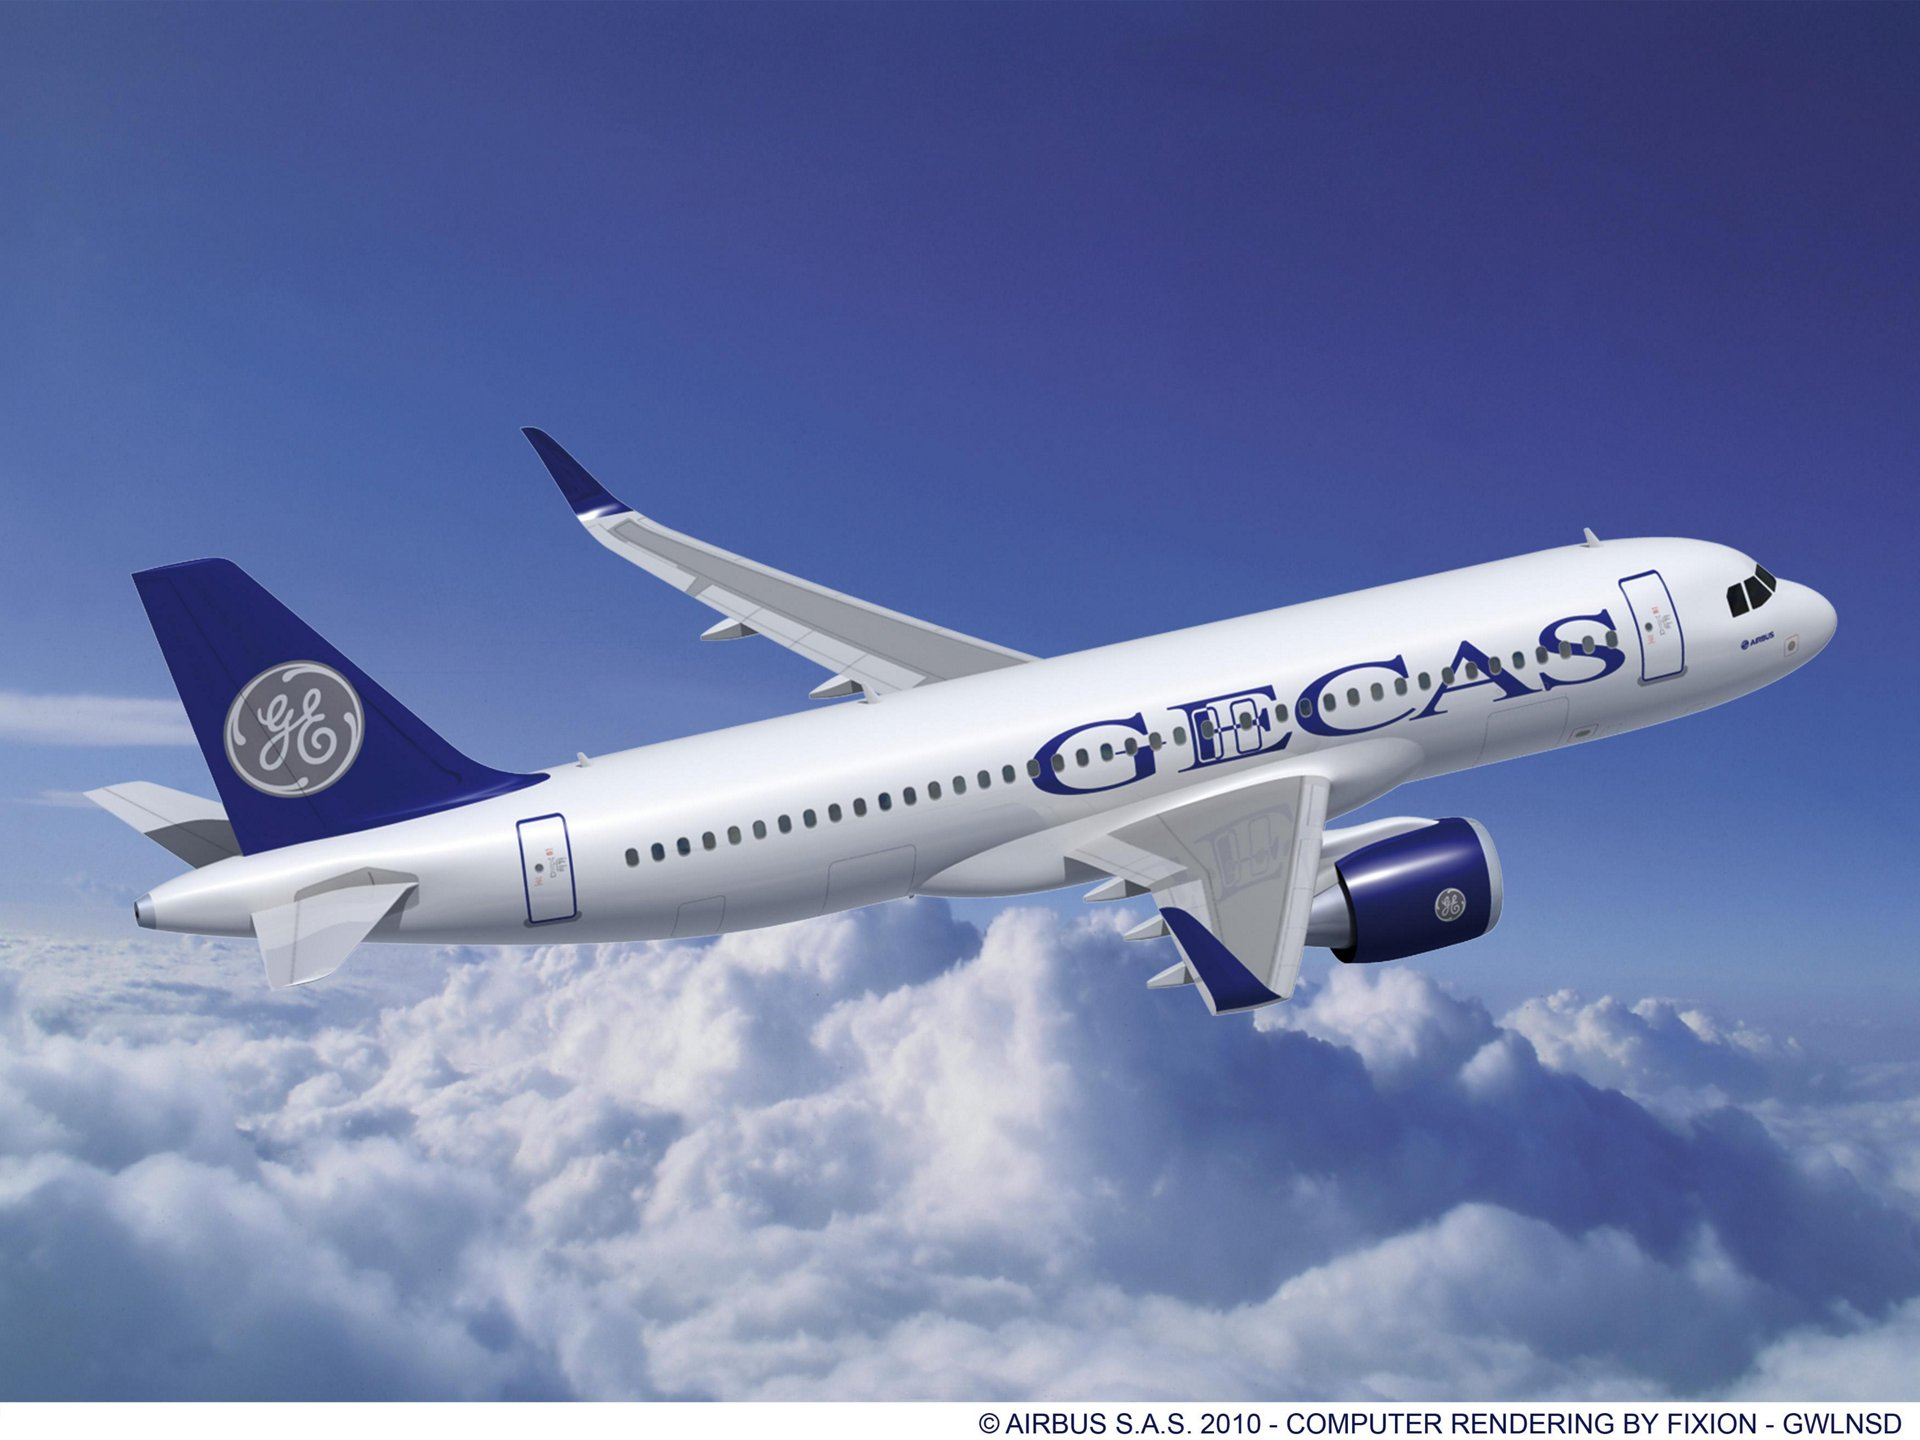 GE Capital Aviation Services (GECAS), the commercial aircraft leasing and financing arm of General Electric [NYSE: GE], has announced a firm order for 60 A320neo Family aircraft at the 49th Le Bourget airshow. GECAS has selected CFM's LEAP-X engine for all 60 A320neo aircraft. (20 June 2011)